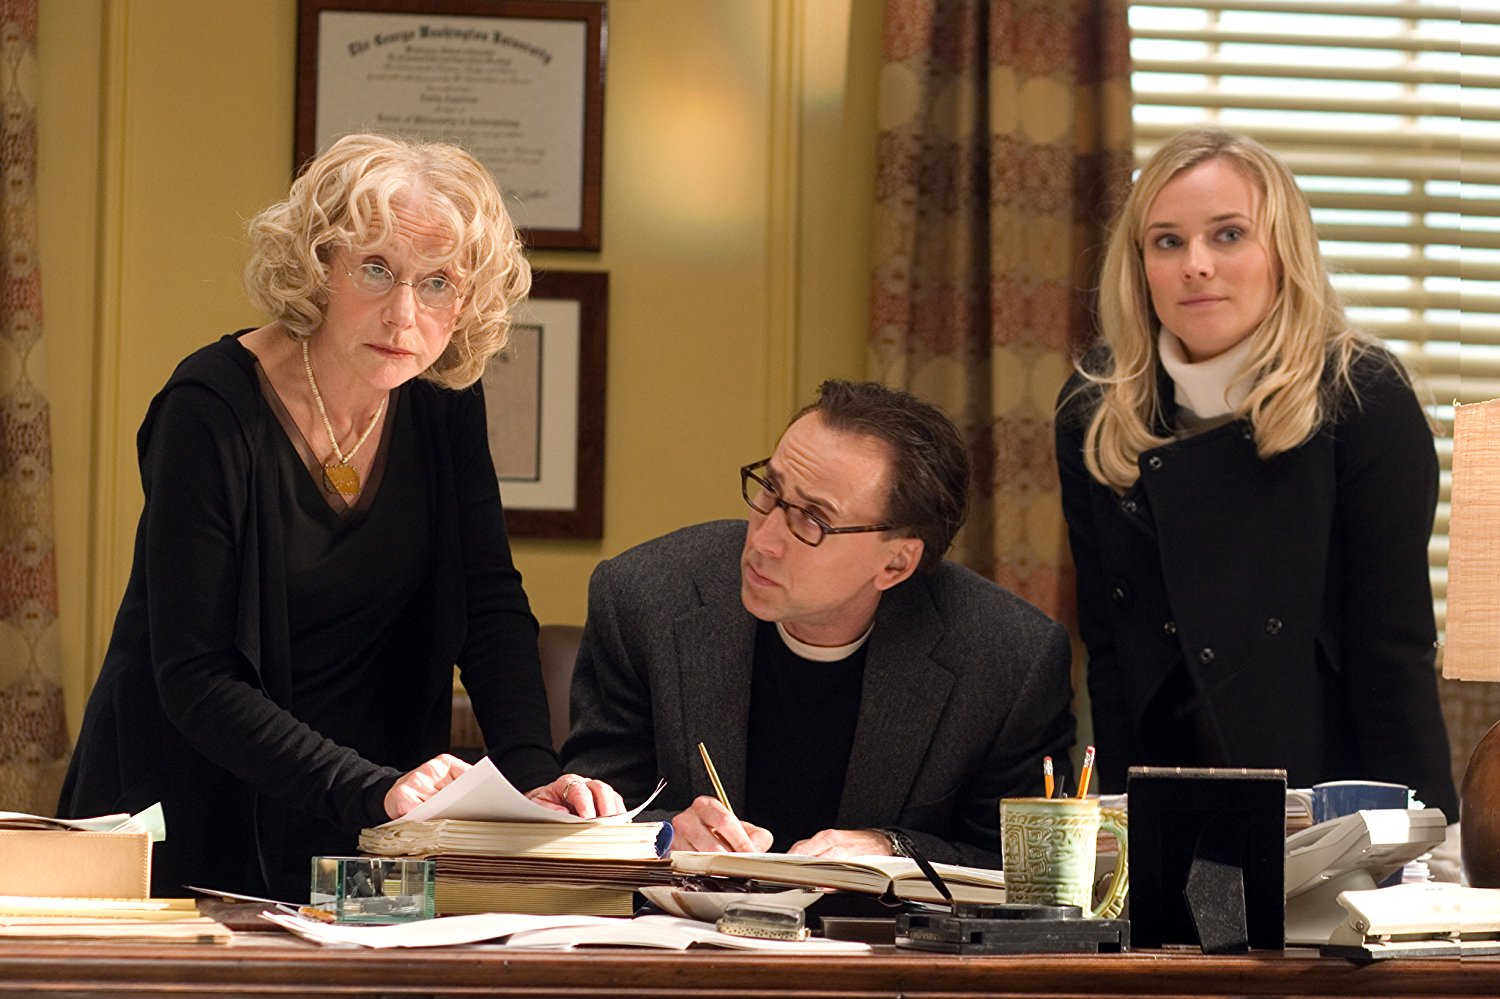 File:National treasure 2 book of secrets movie image nicolas cage diane kruger and helen mirren.jpg